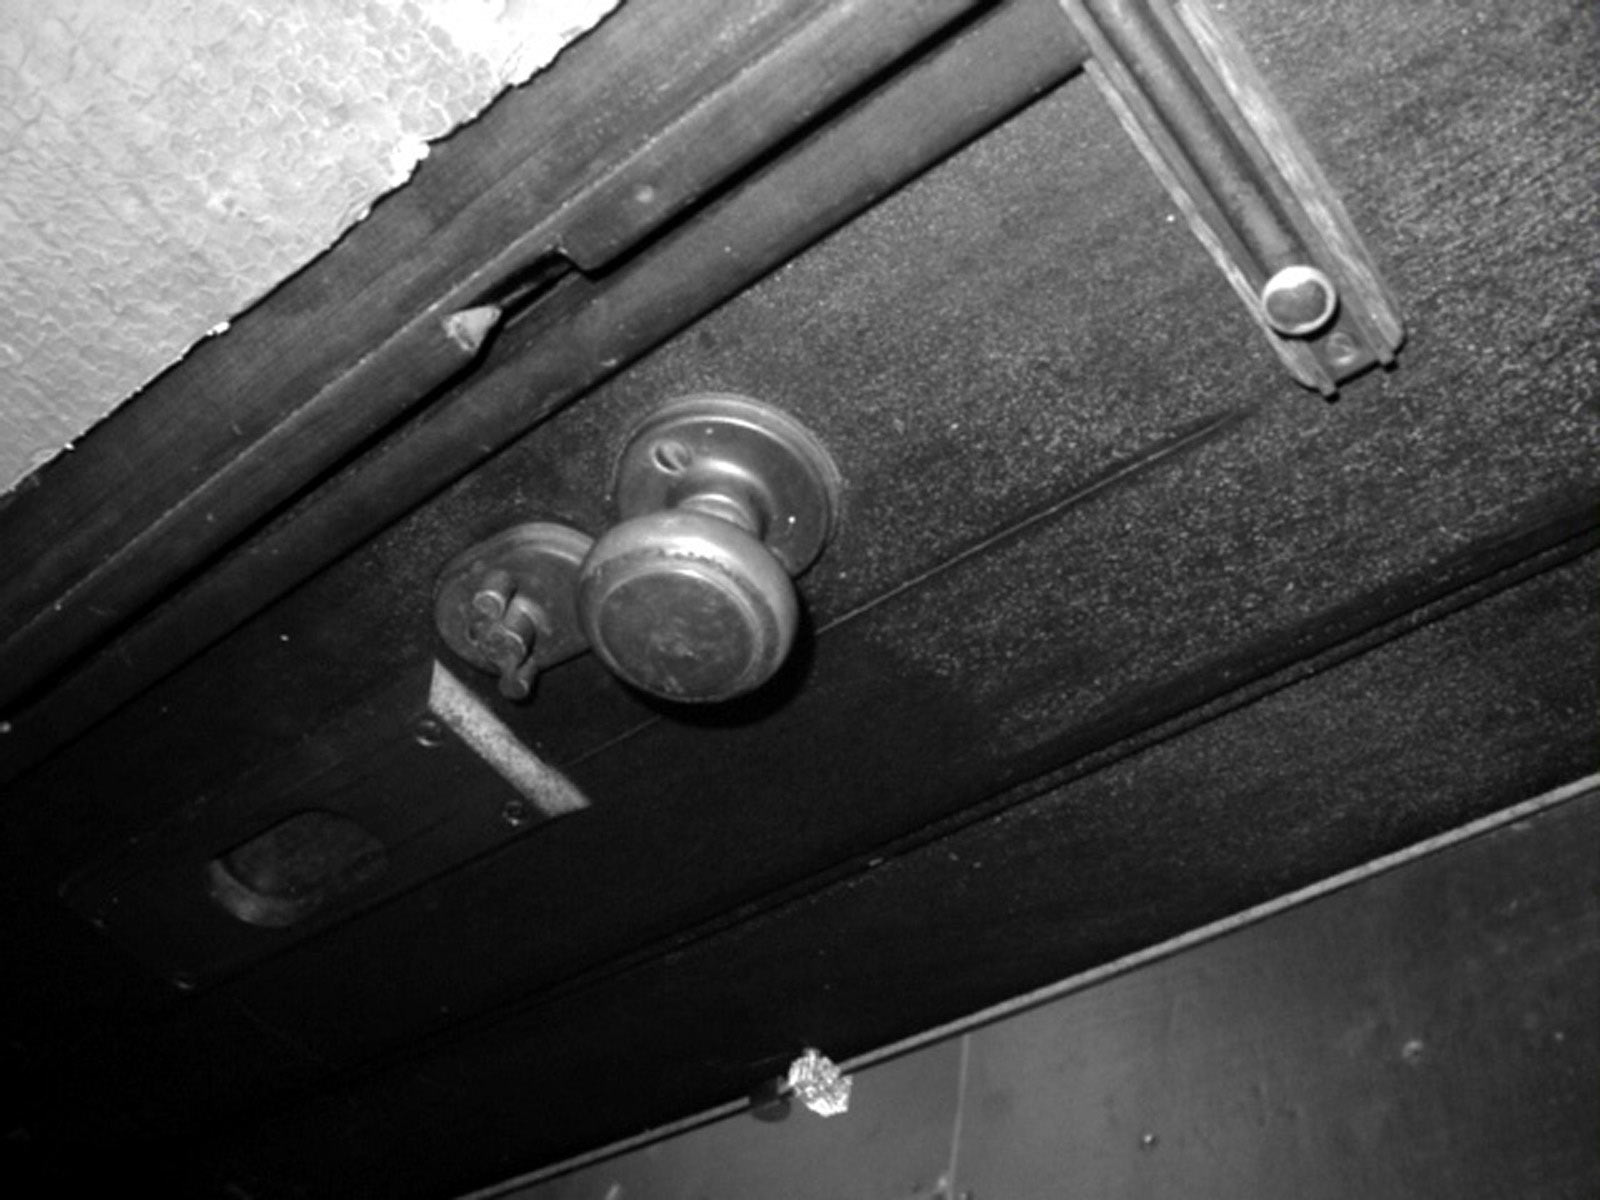 Old door, Blackandwhite, Door, Handle, Lock, HQ Photo